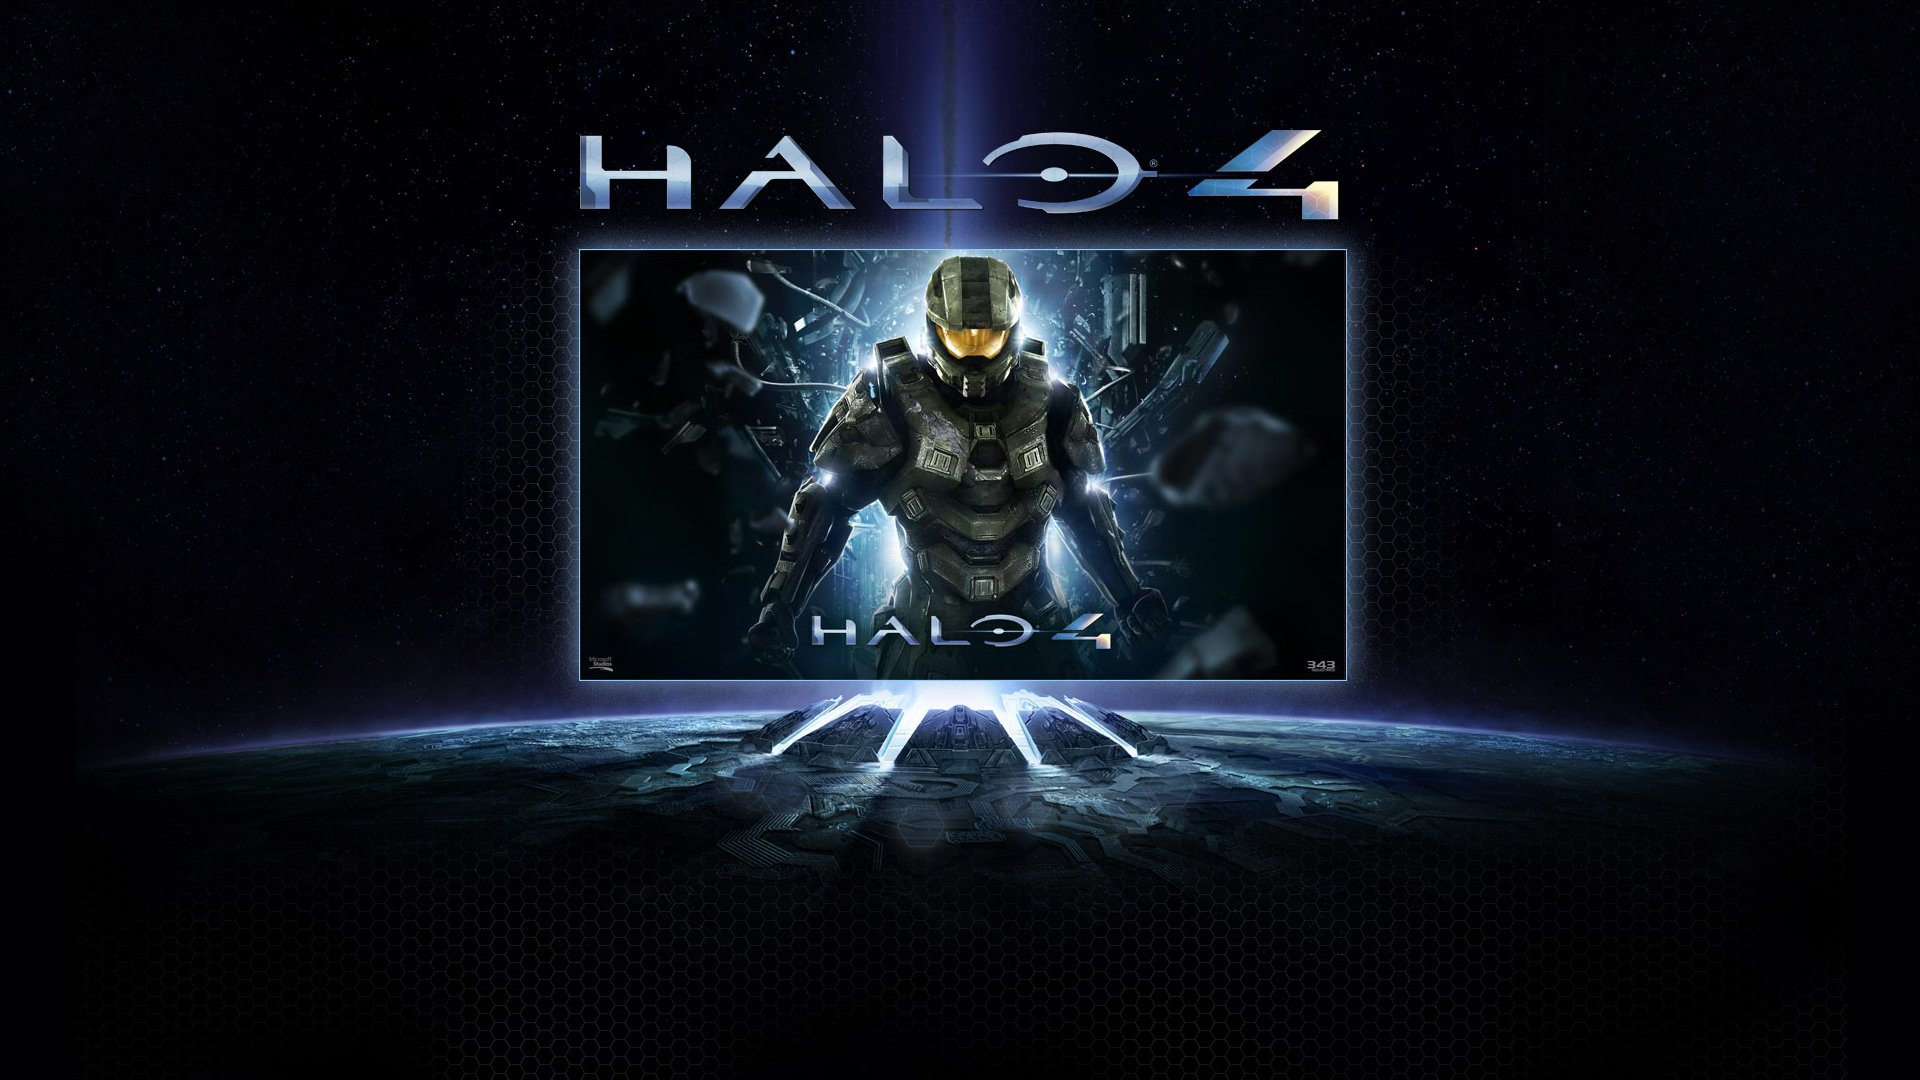 halo 4 wallpapers hd iphone images wallpaper and free